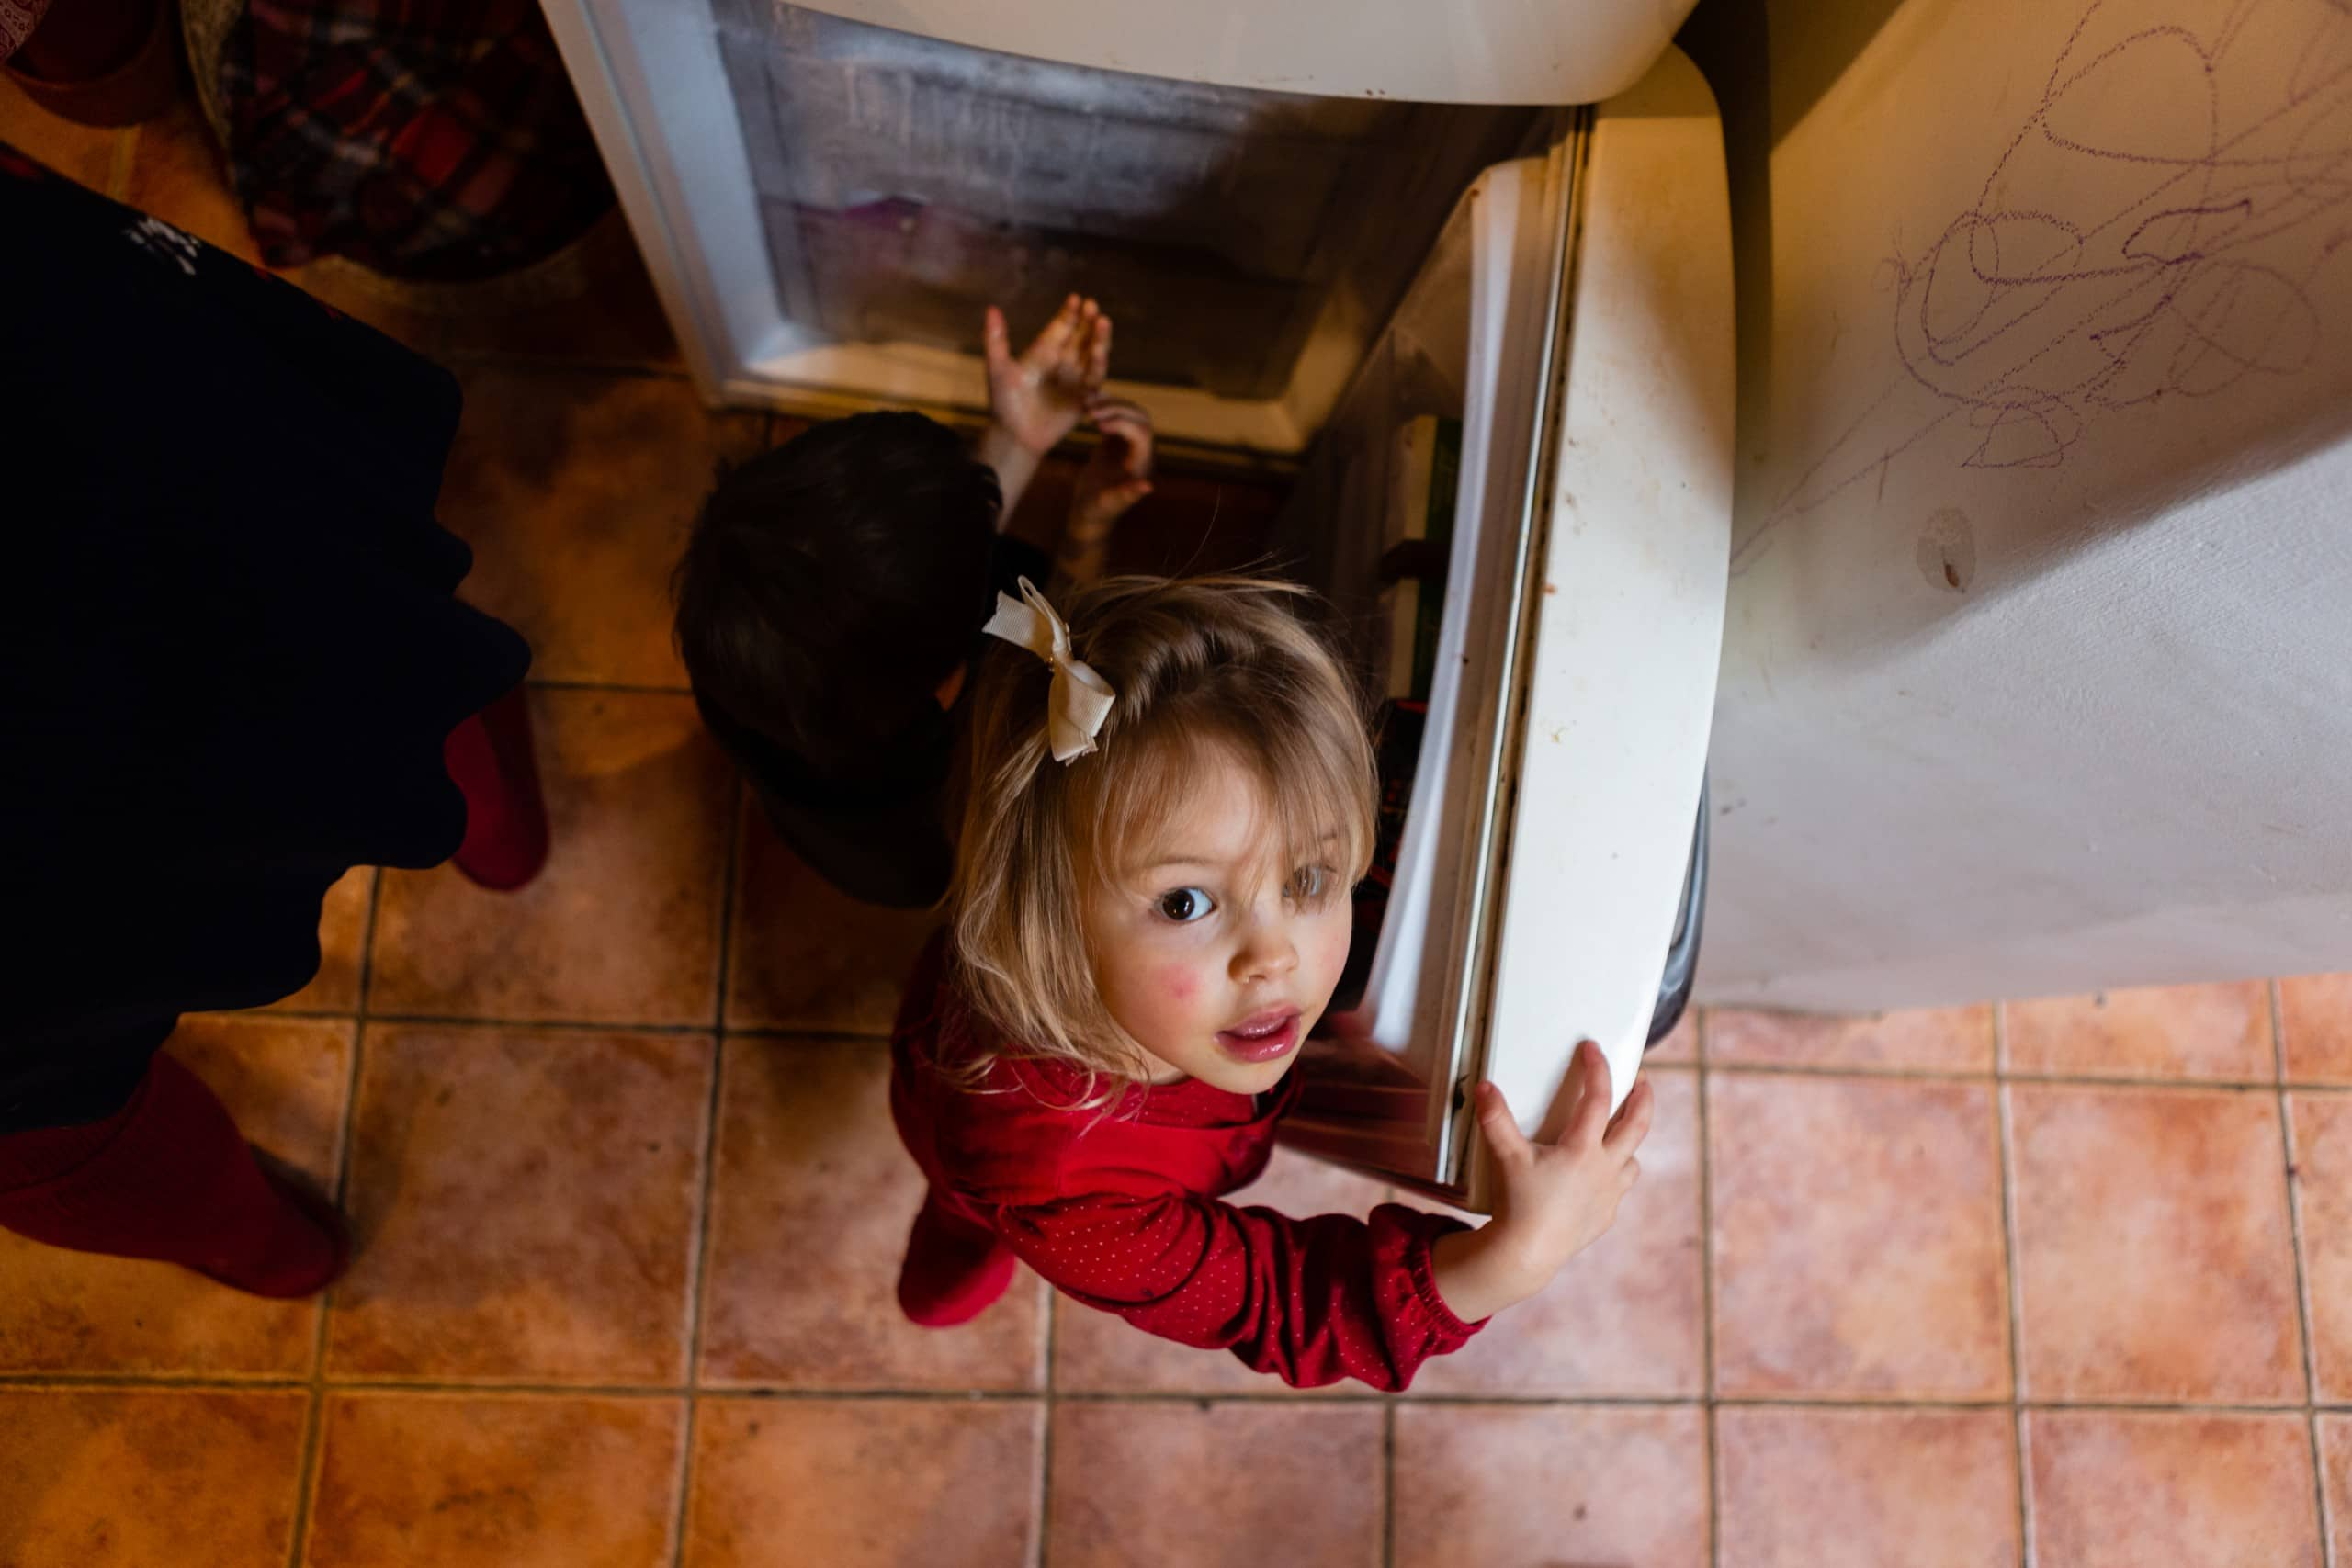 Children caught in the act of eat ice from freezer